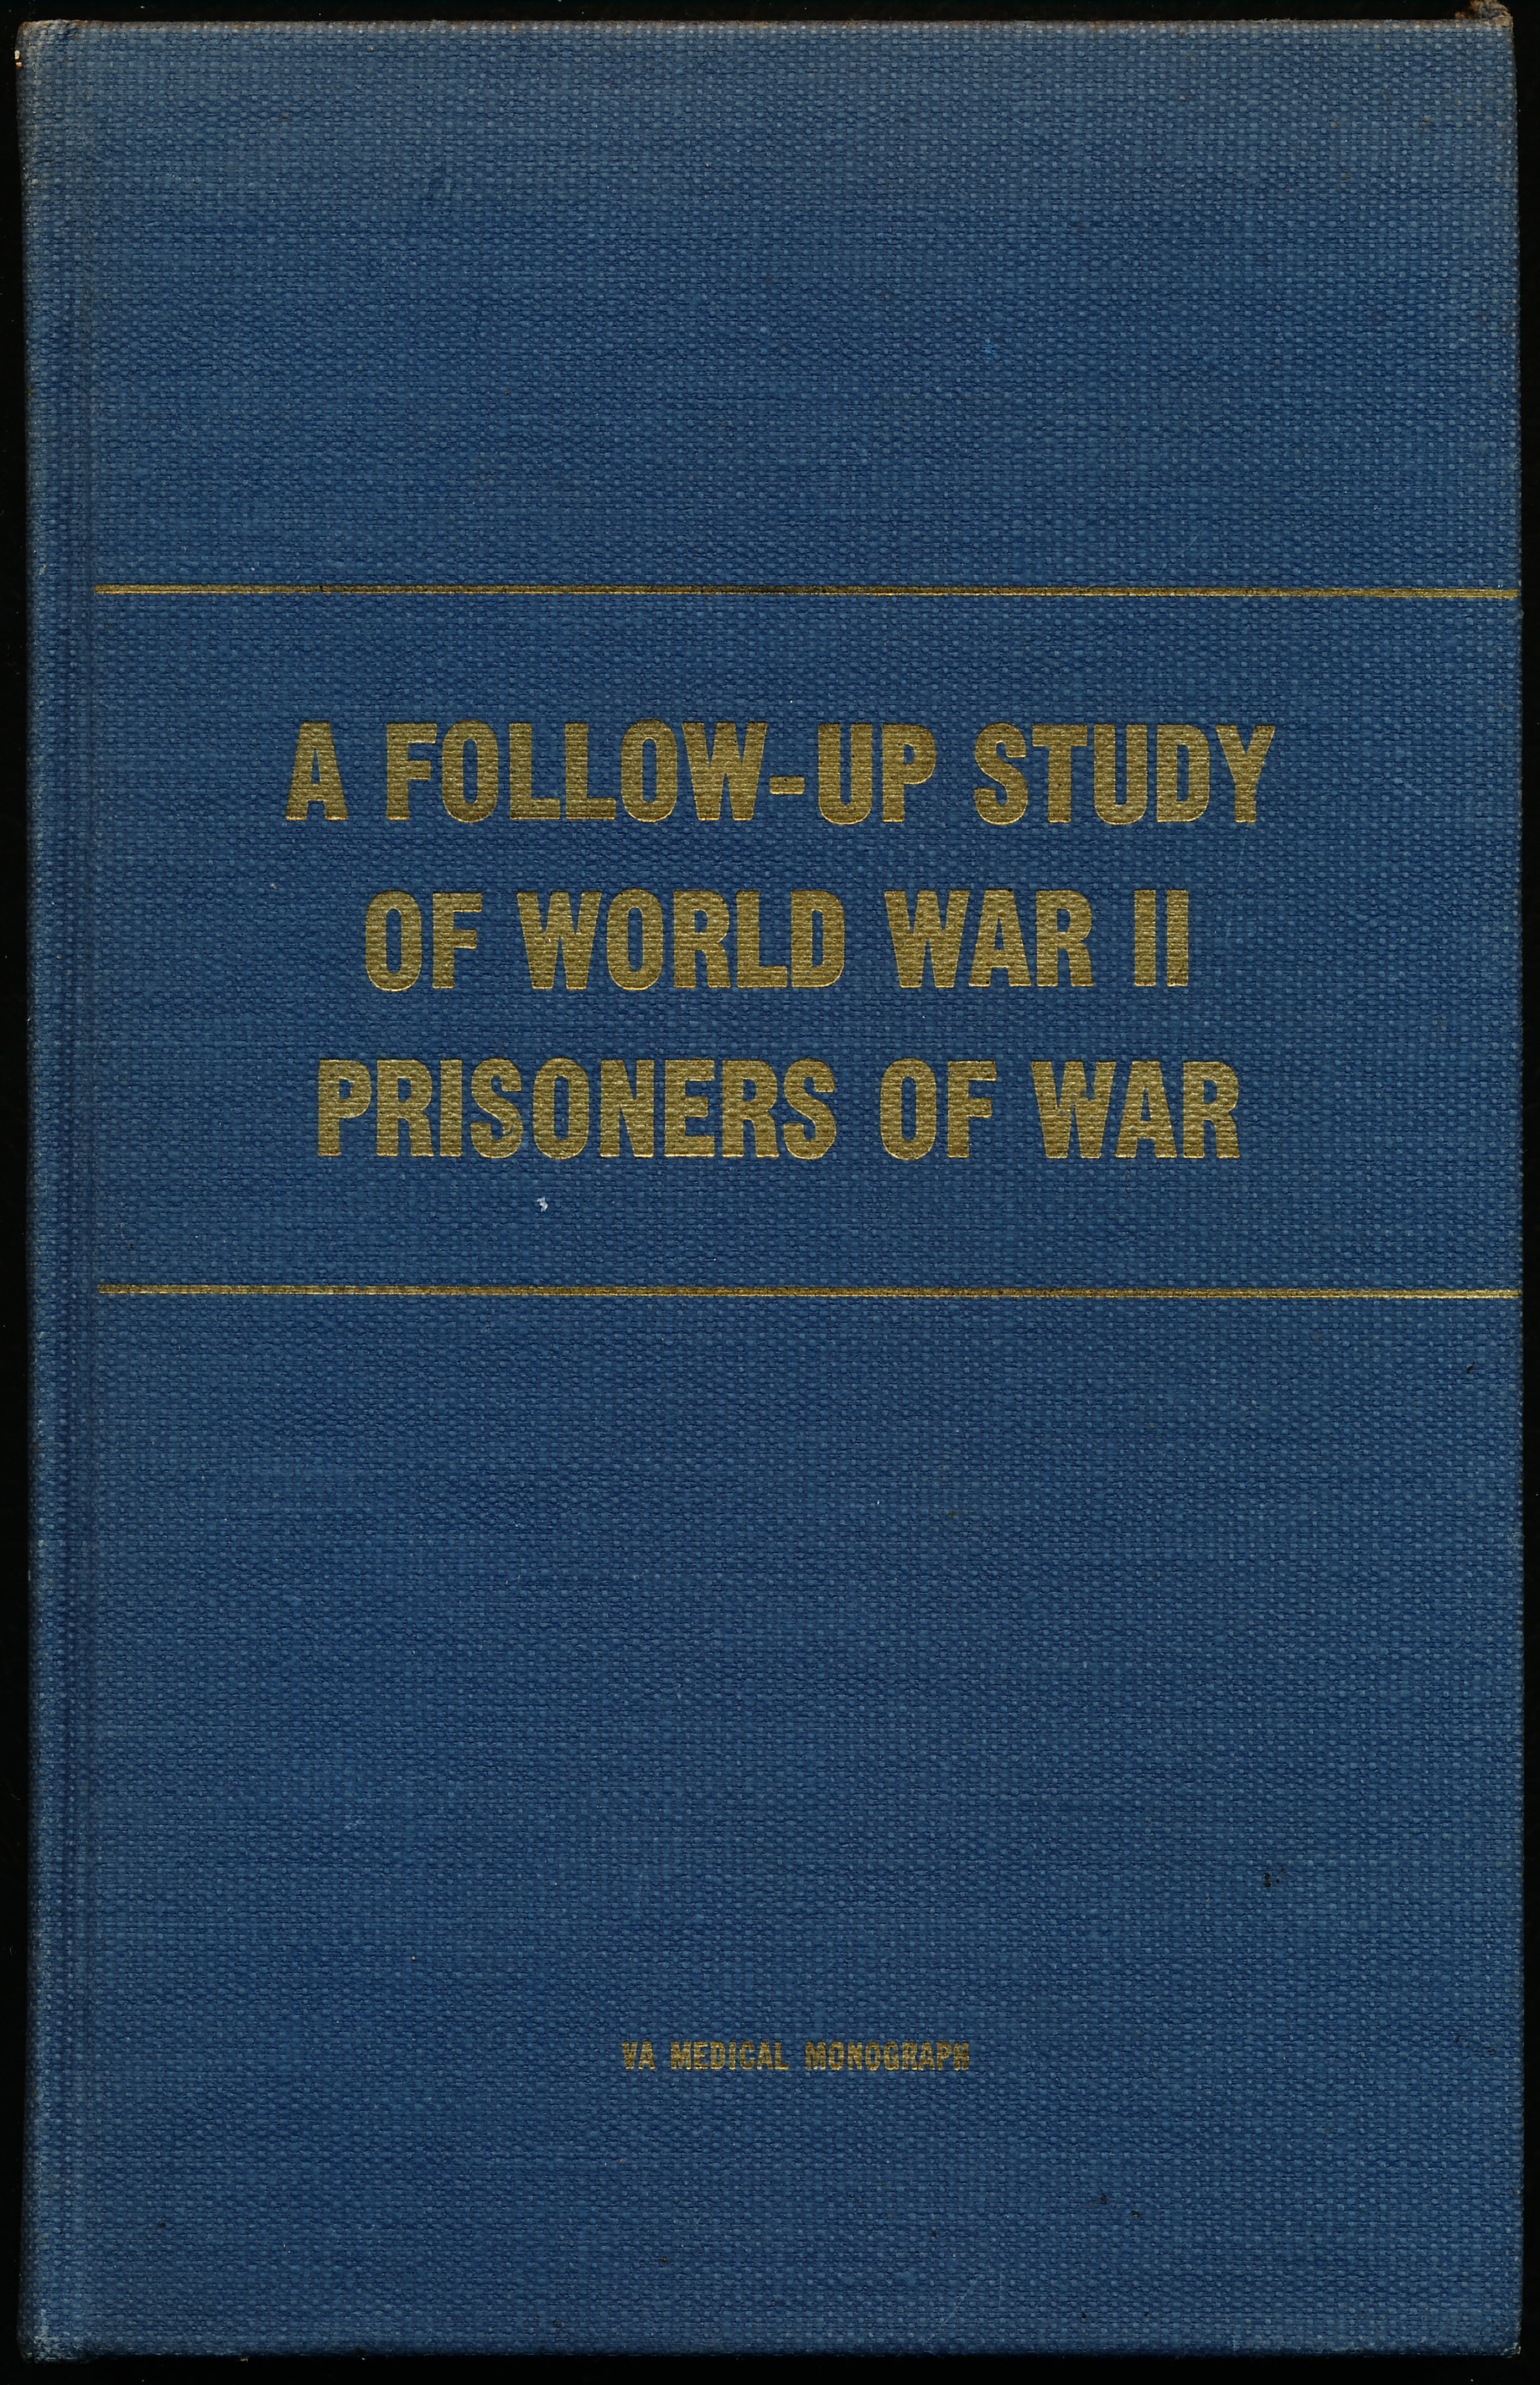 Image for A FOLLOW-UP STUDY OF WORLD WAR II PRISONERS OF WAR.